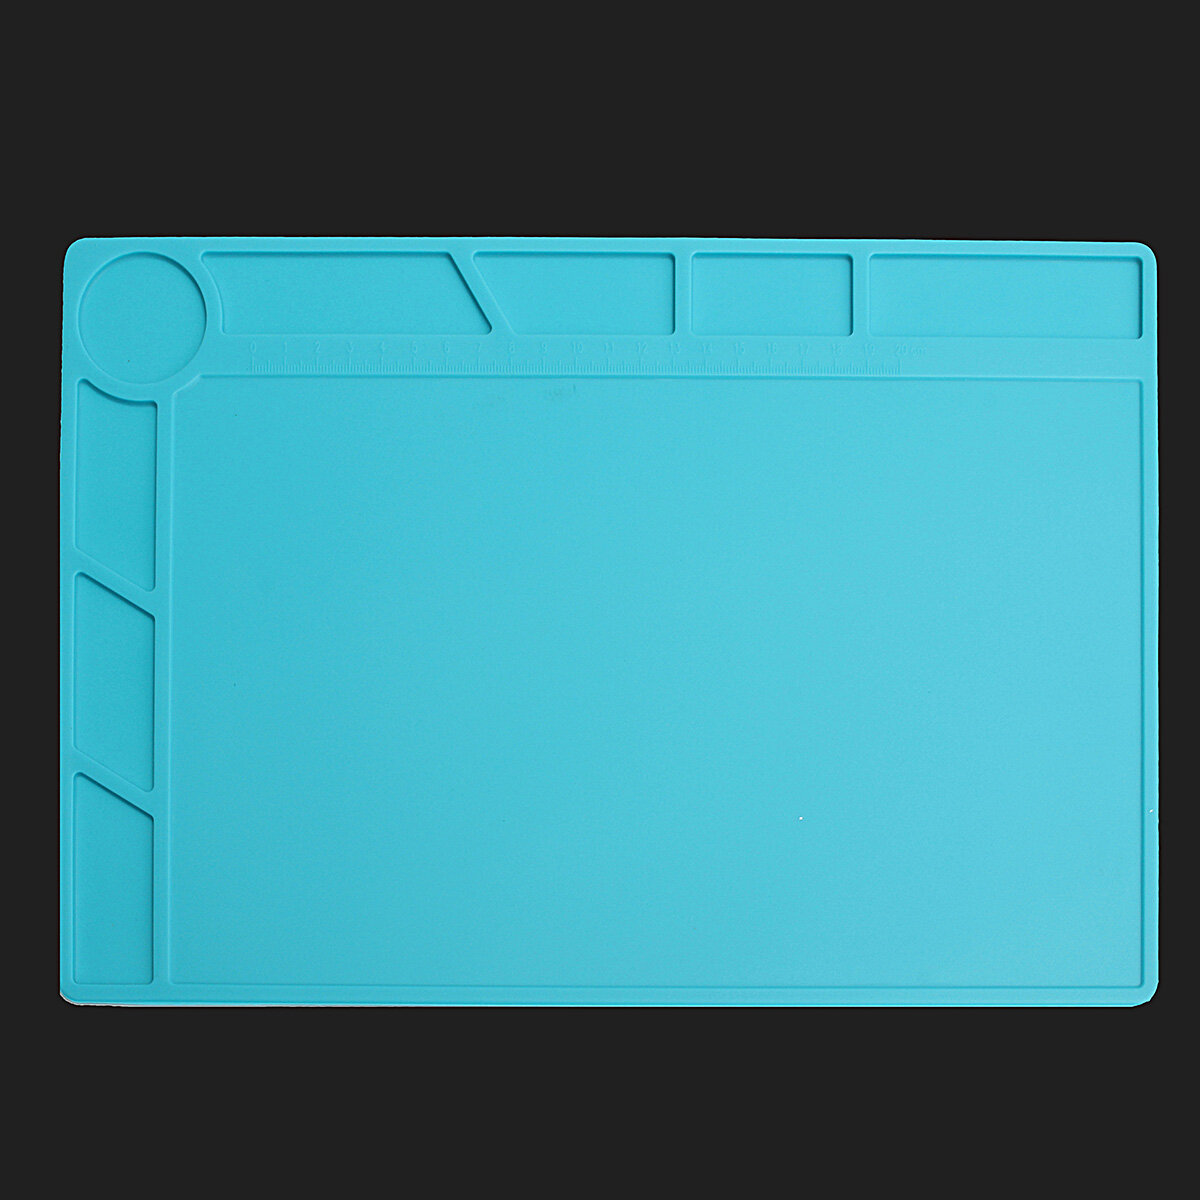 35x25cm Magnetic Heat Resistant Silicone Pad Desk Mat Maintenance Platform Heat Insulation BGA Soldering Repair Station - 2